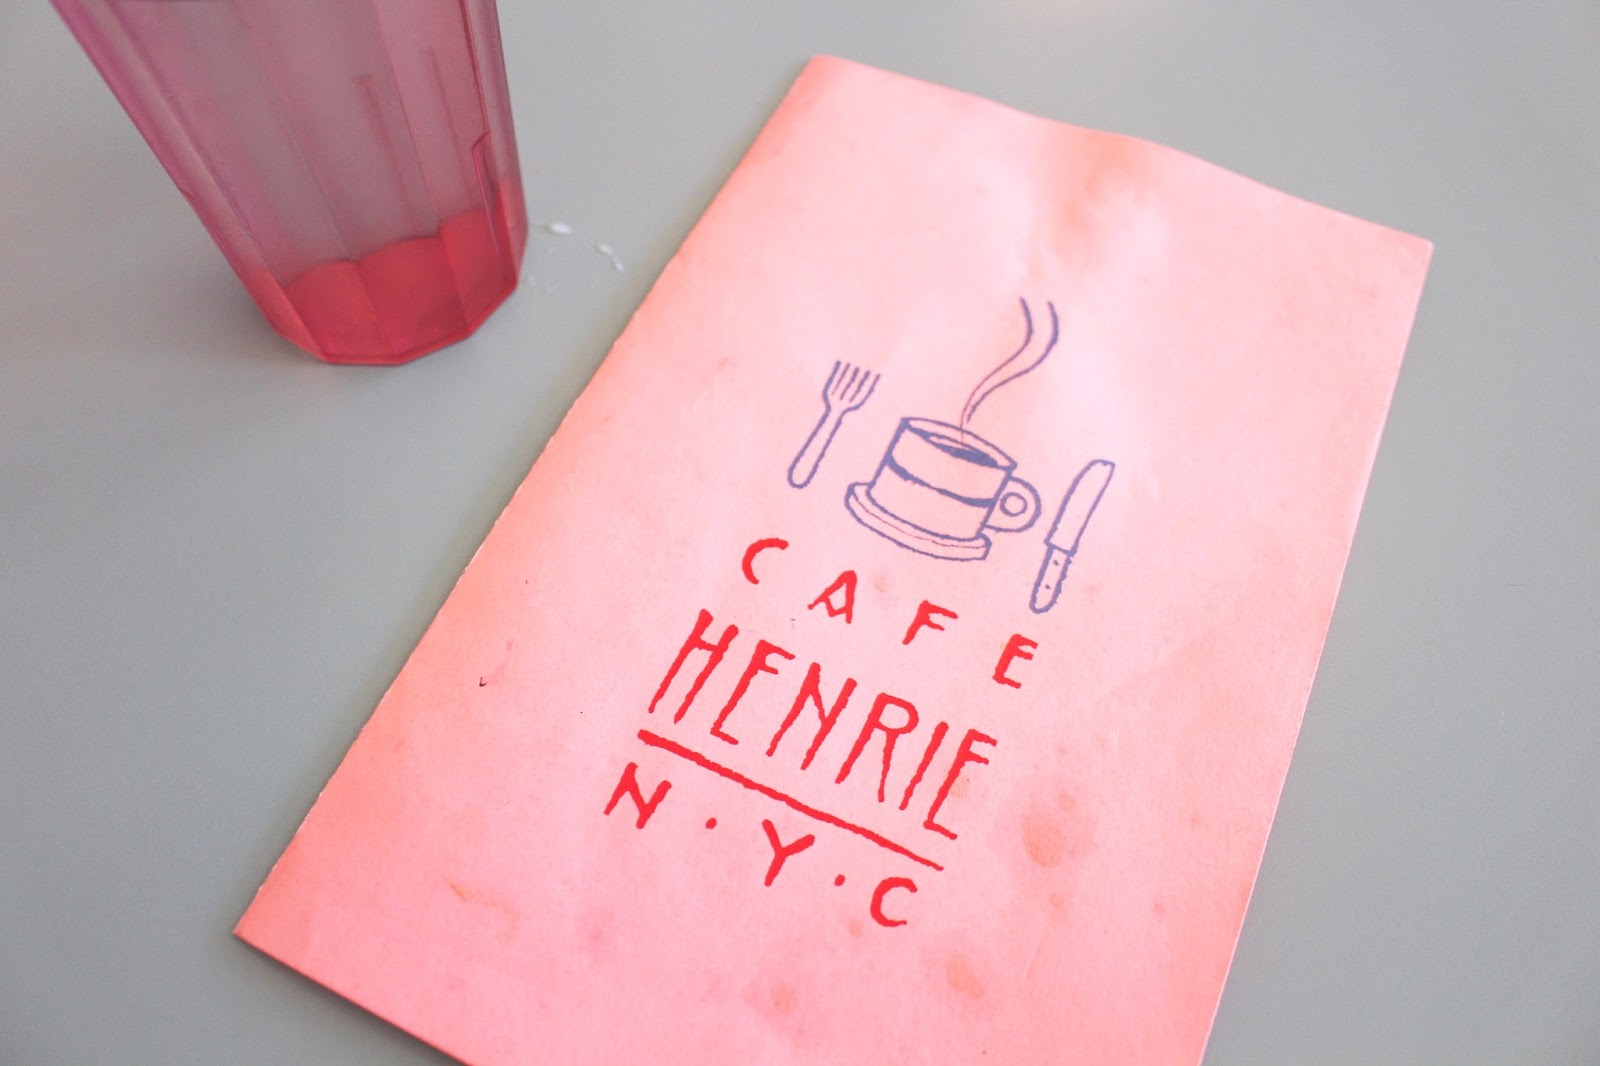 Cafe Henrie | New York